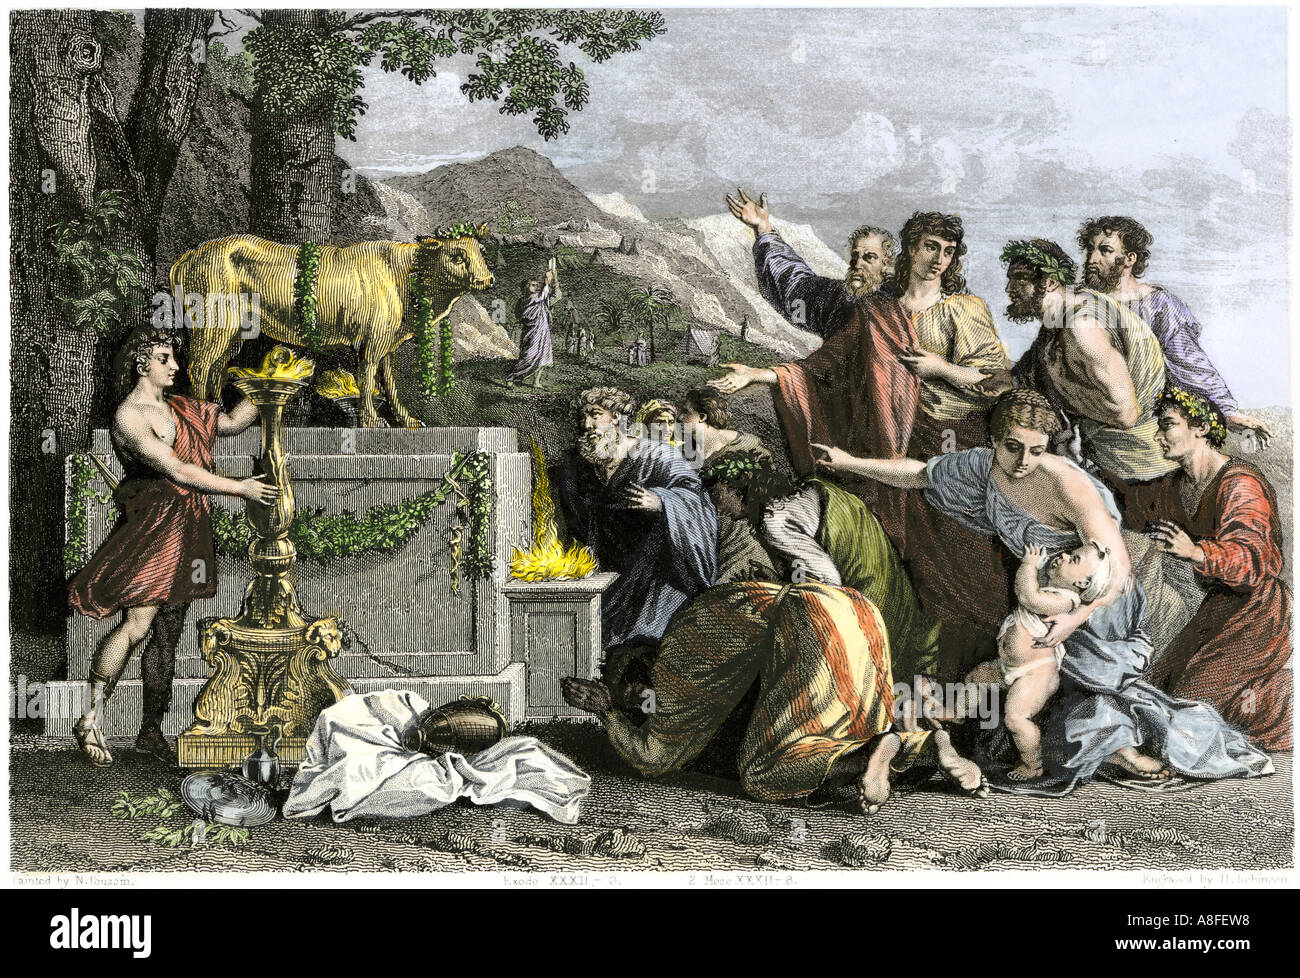 Ancient Hebrews worshiping a calf of gold after escaping from slavery in Egypt with Moses. Hand-colored halftone of an illustration - Stock Image